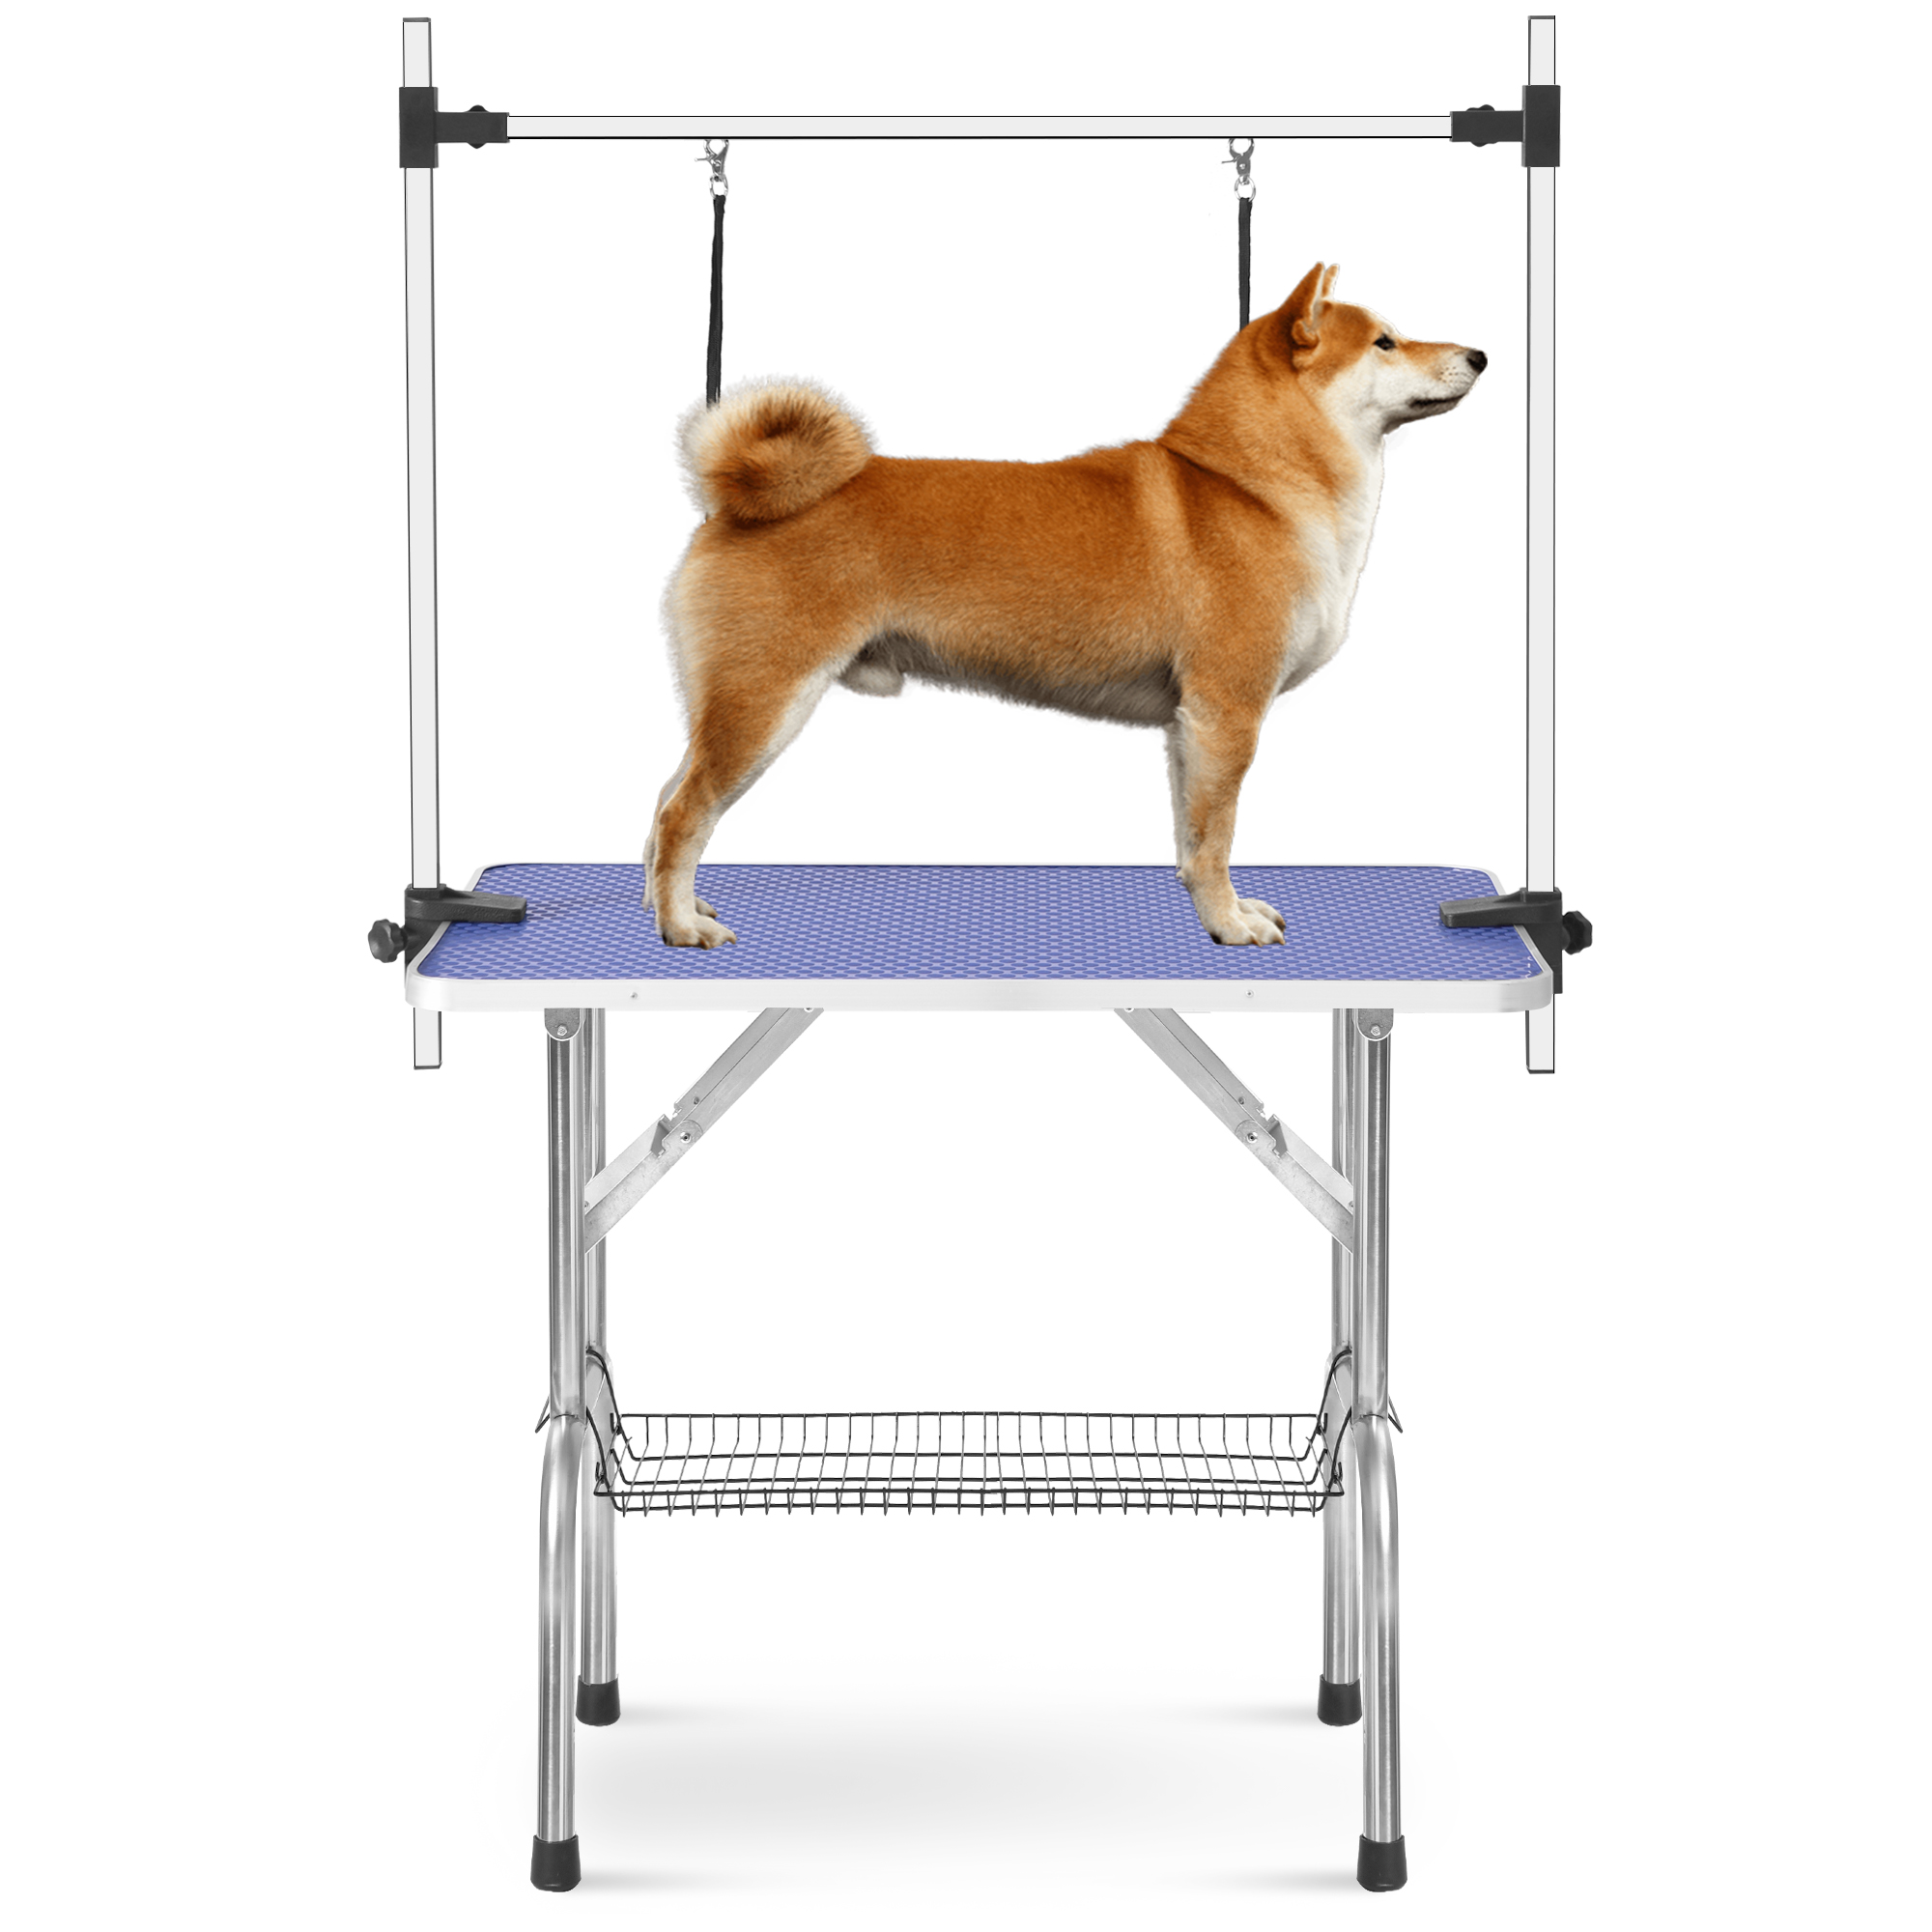 "Dog Grooming Table Best Deal, 36"" Folding Pet Grooming Table with Arm Noose & Mesh Tray, Heavy Duty Stainless Steel Pet Trimming Table for Large Dogs Adjustable Height, Capacity Up to 300lbs,I9433"